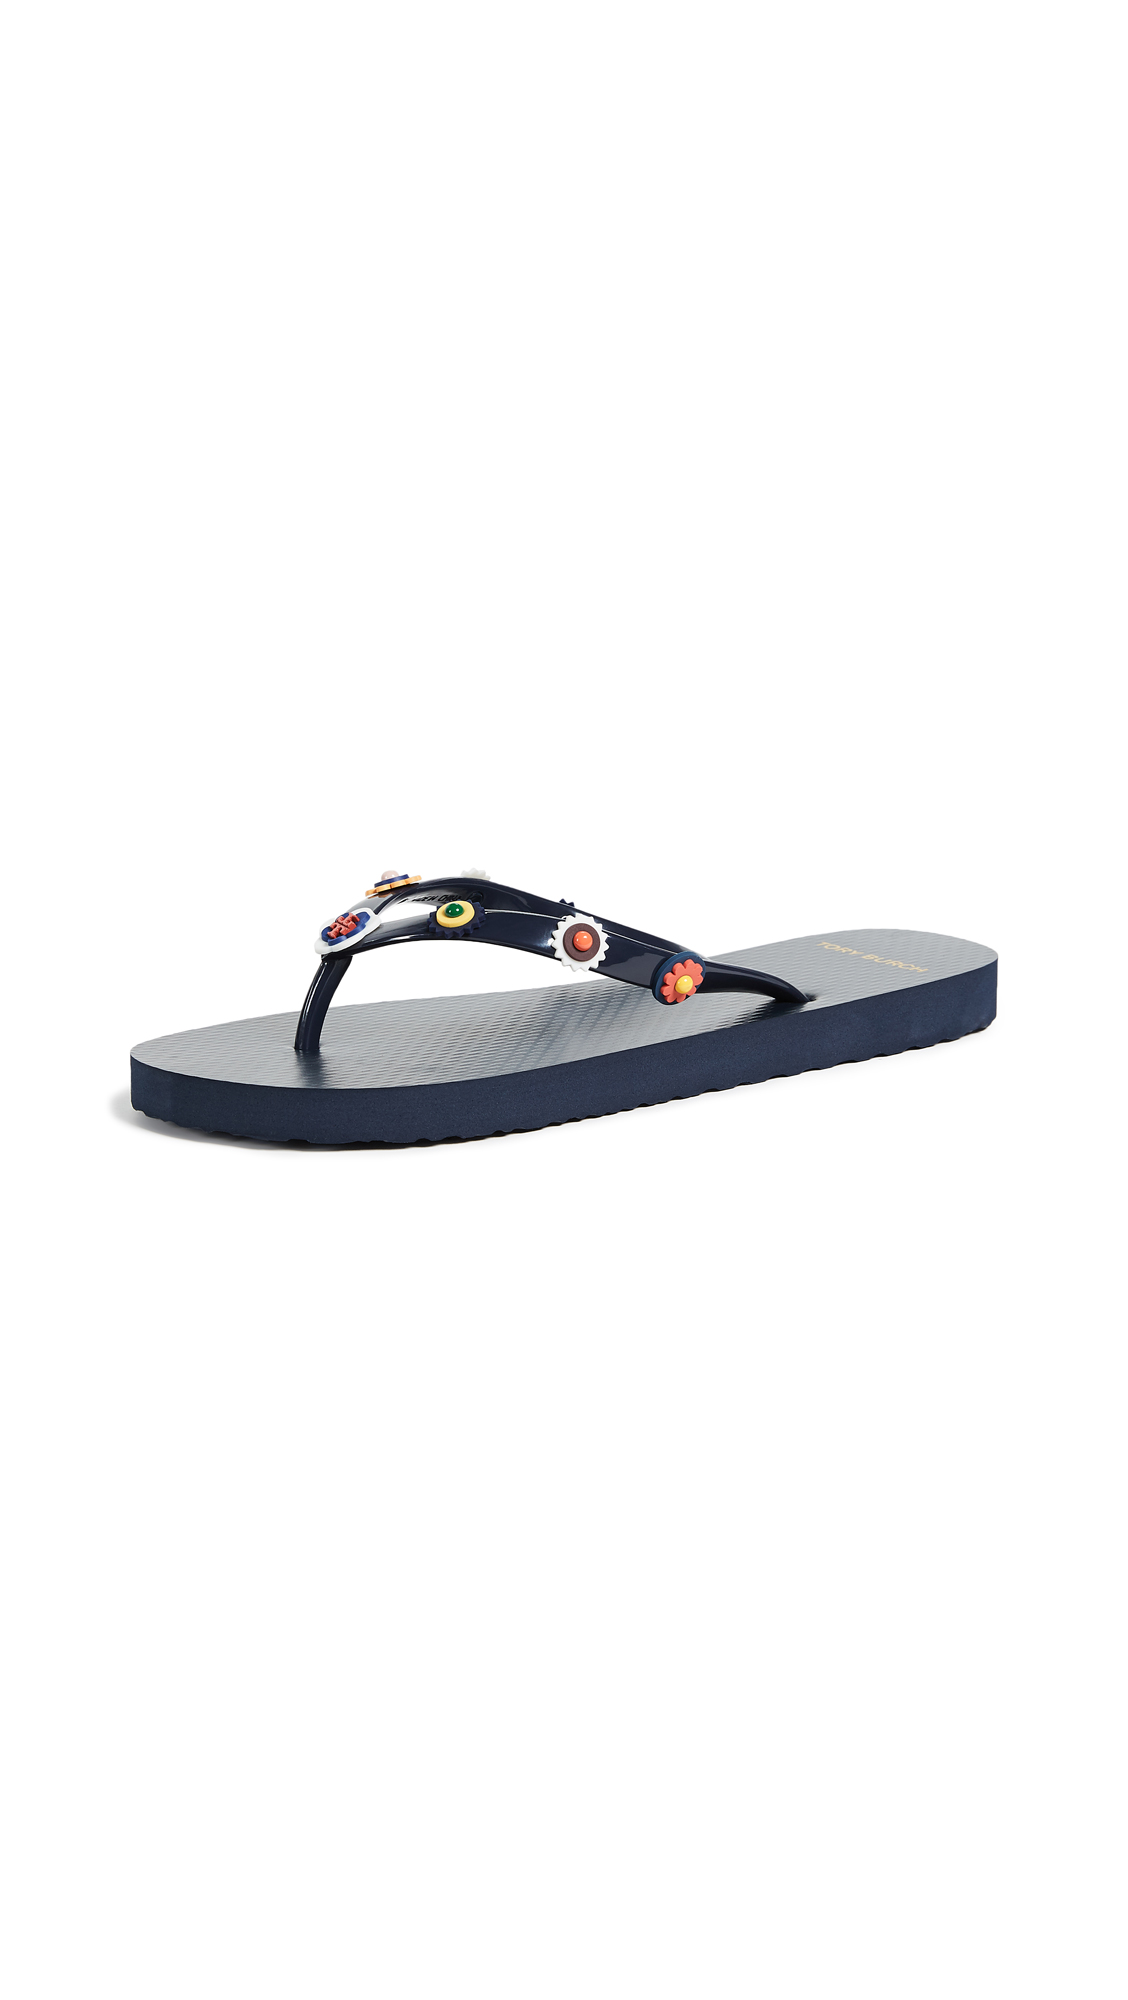 Tory Burch Marguerite 2 Flip Flops - Perfect Navy